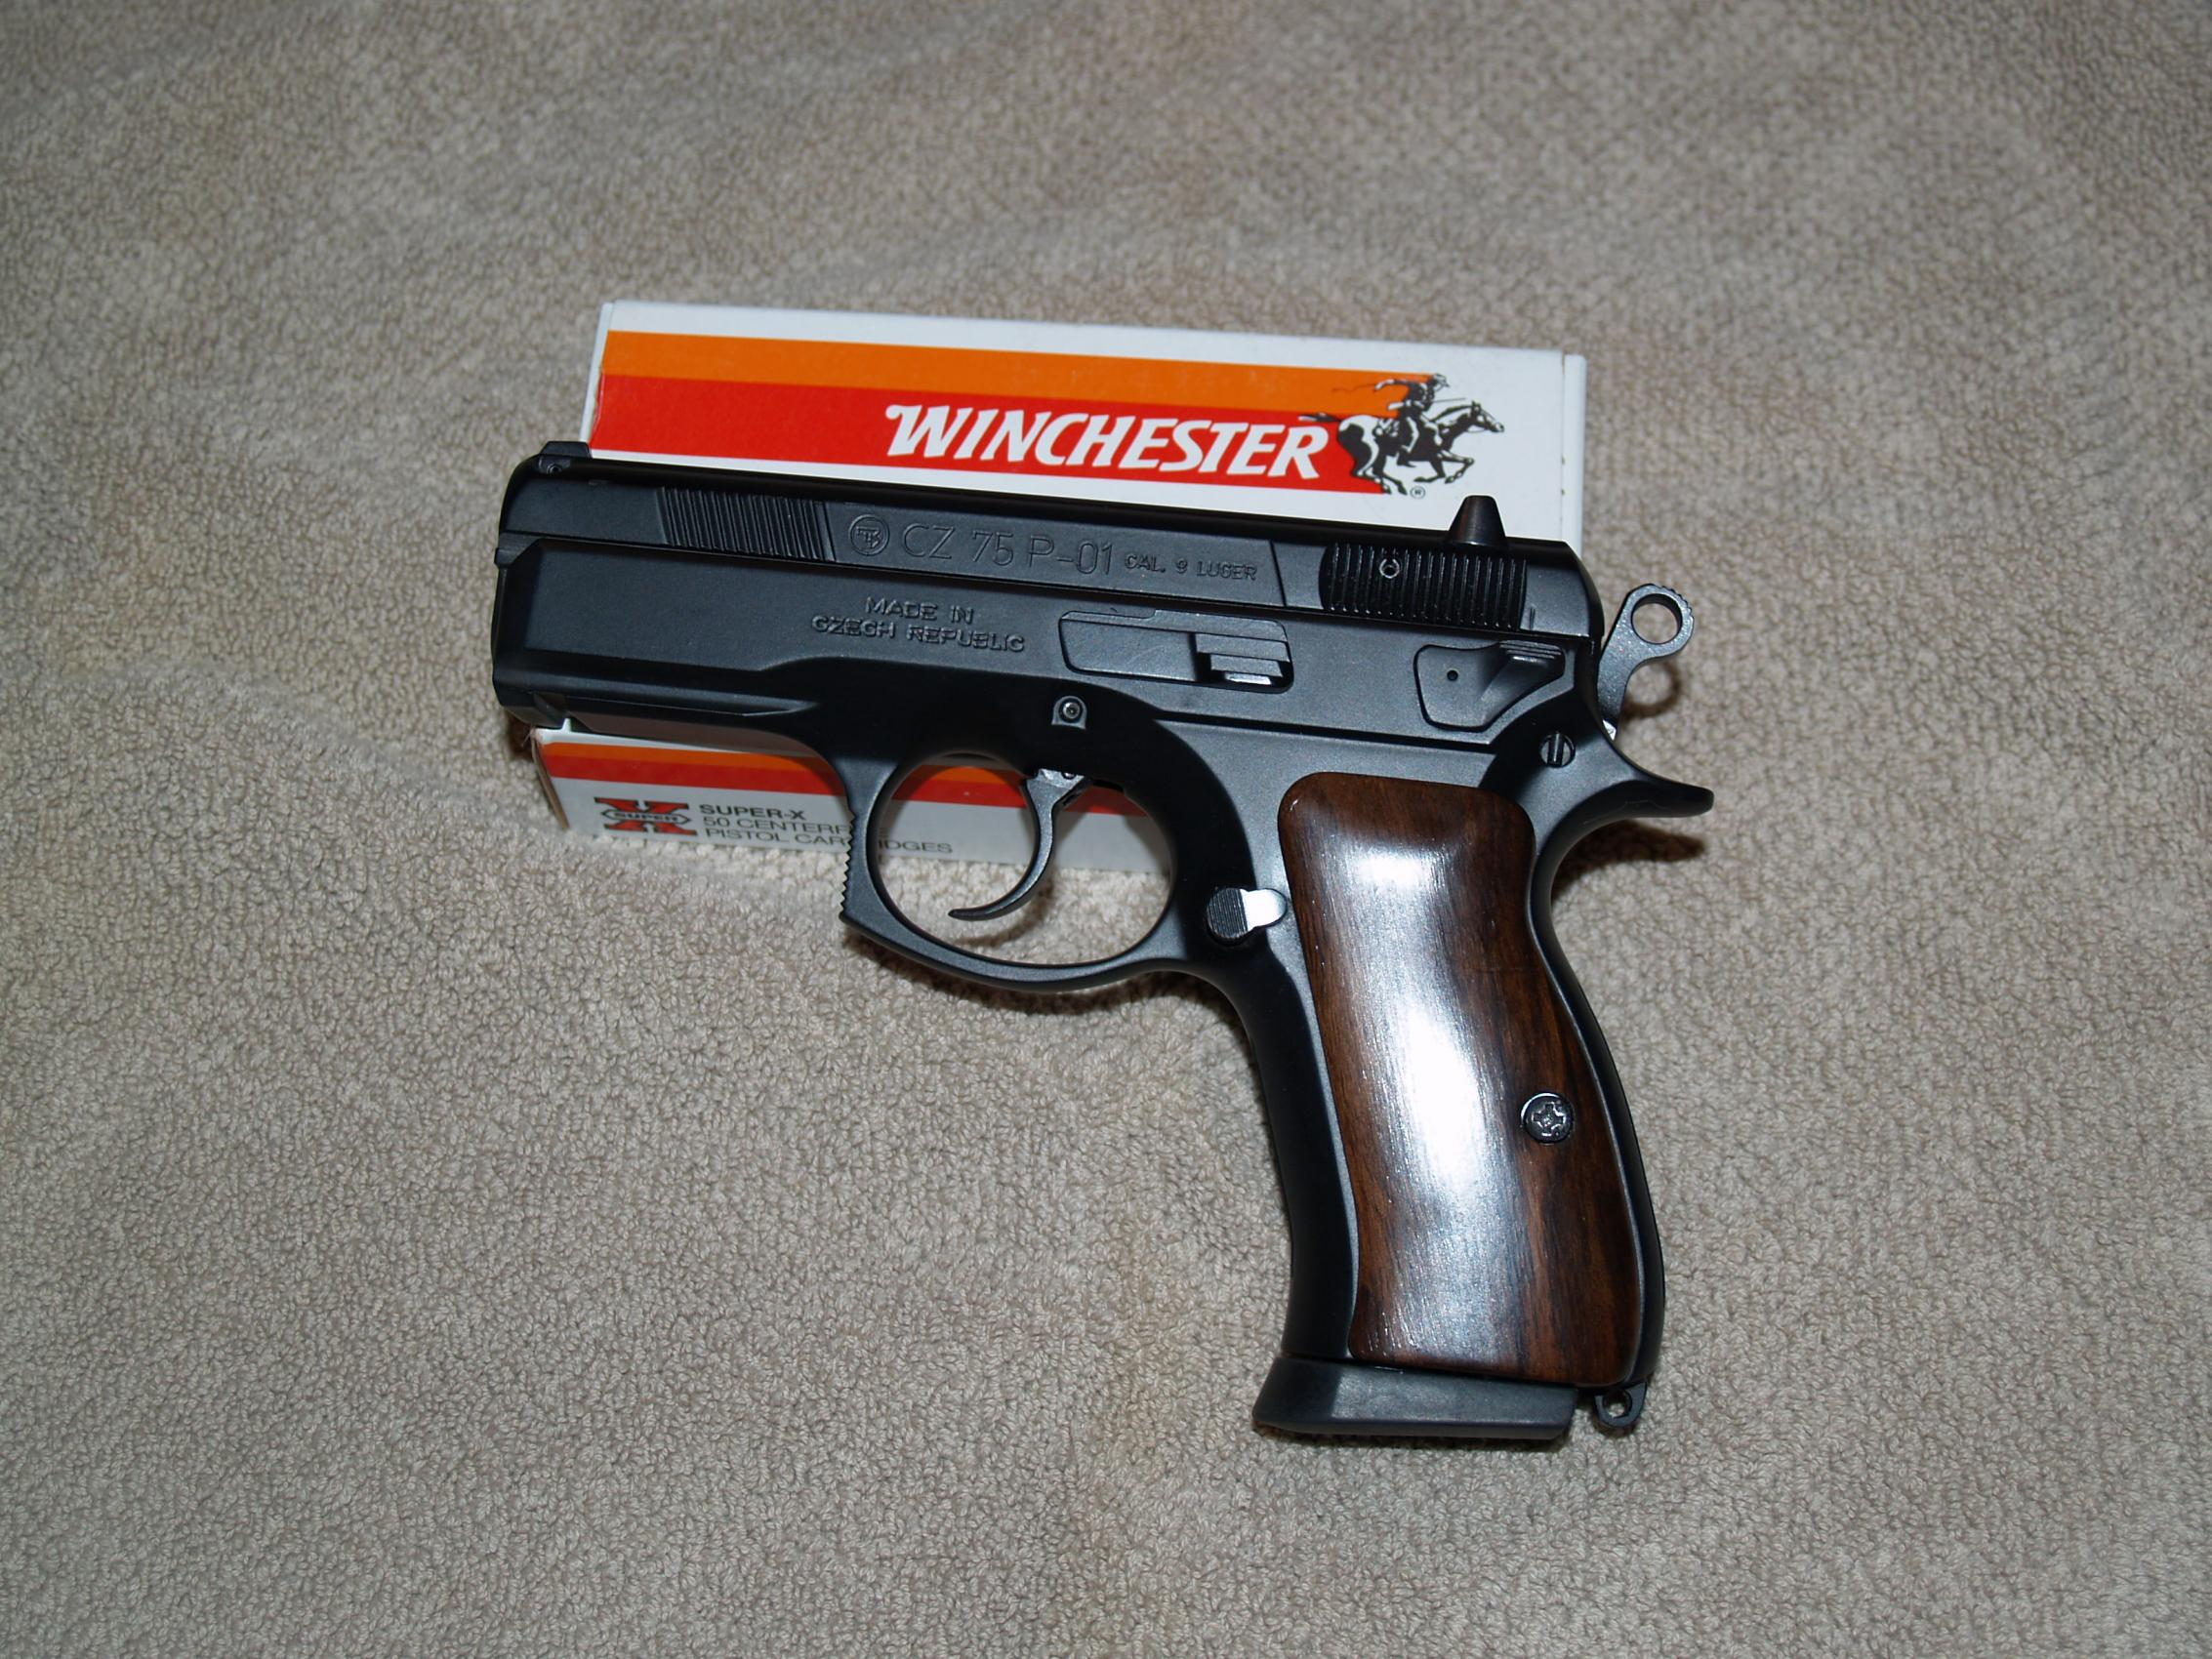 Give me some Gun and Holster suggestions for my next CCW...-p1020060.jpg